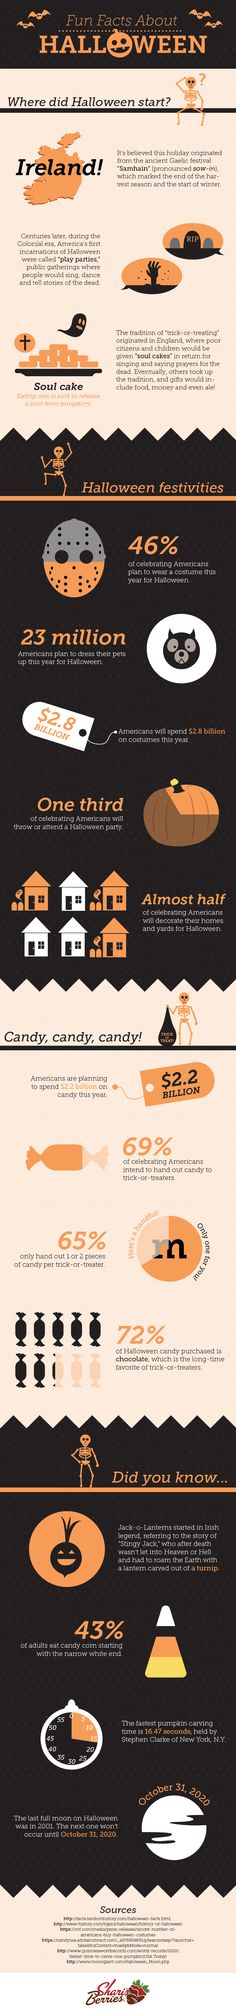 """Fun Facts About Halloween - How did trick-or-treating start? Why is it called a Jack-o-Lantern""""? Halloween is full of mystery... So we did a little poking around to answer these questions and brush up on our Halloween knowledge and trivia. And of course, impress our friends at the next Halloween party."""